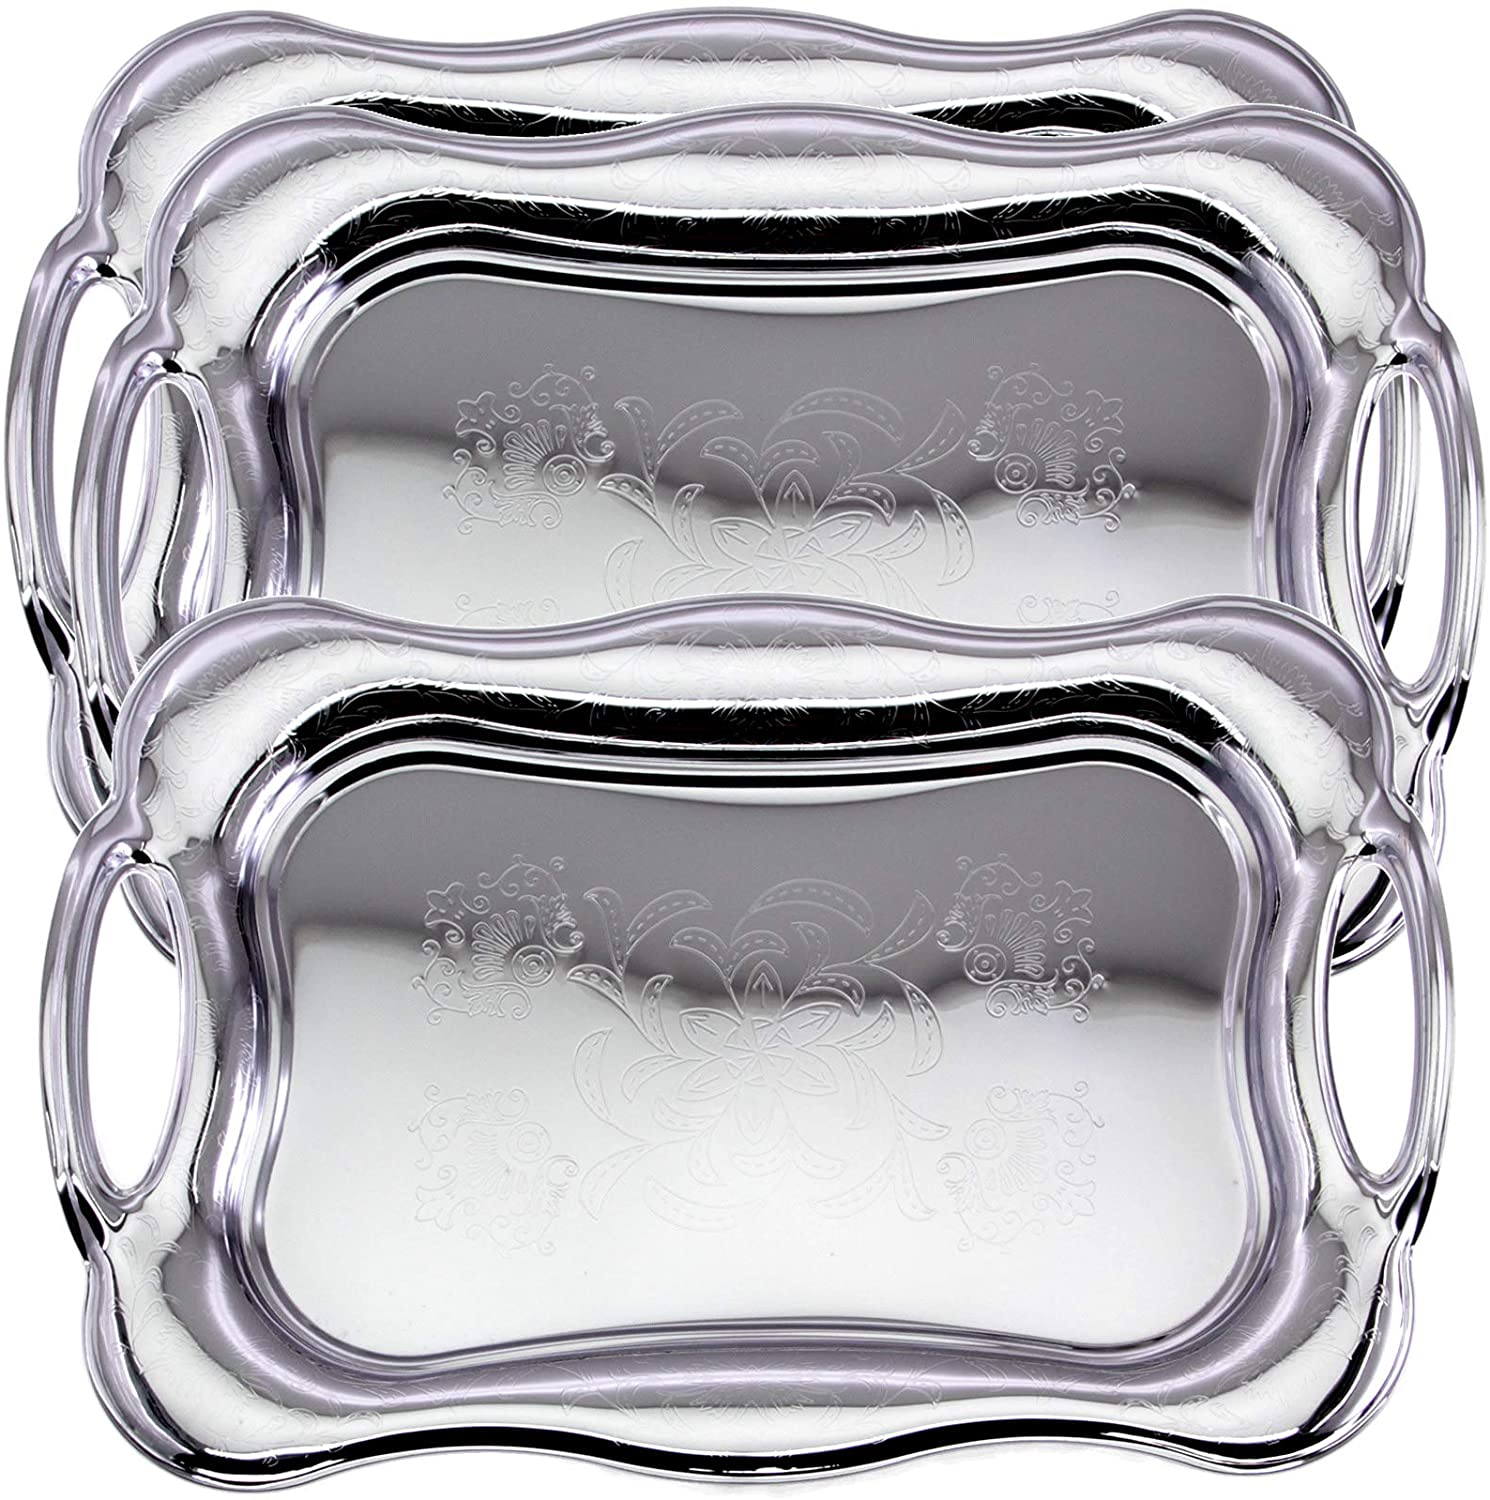 Maro Megastore (Pack of 3) 18 inch x 12.2 inch Rectangular Chrome Plated Serving Tray with Handle Floral Engraved Vintage Classic Design Mirror Plate Platter Holiday Wedding Buffet Food Event TLA-393